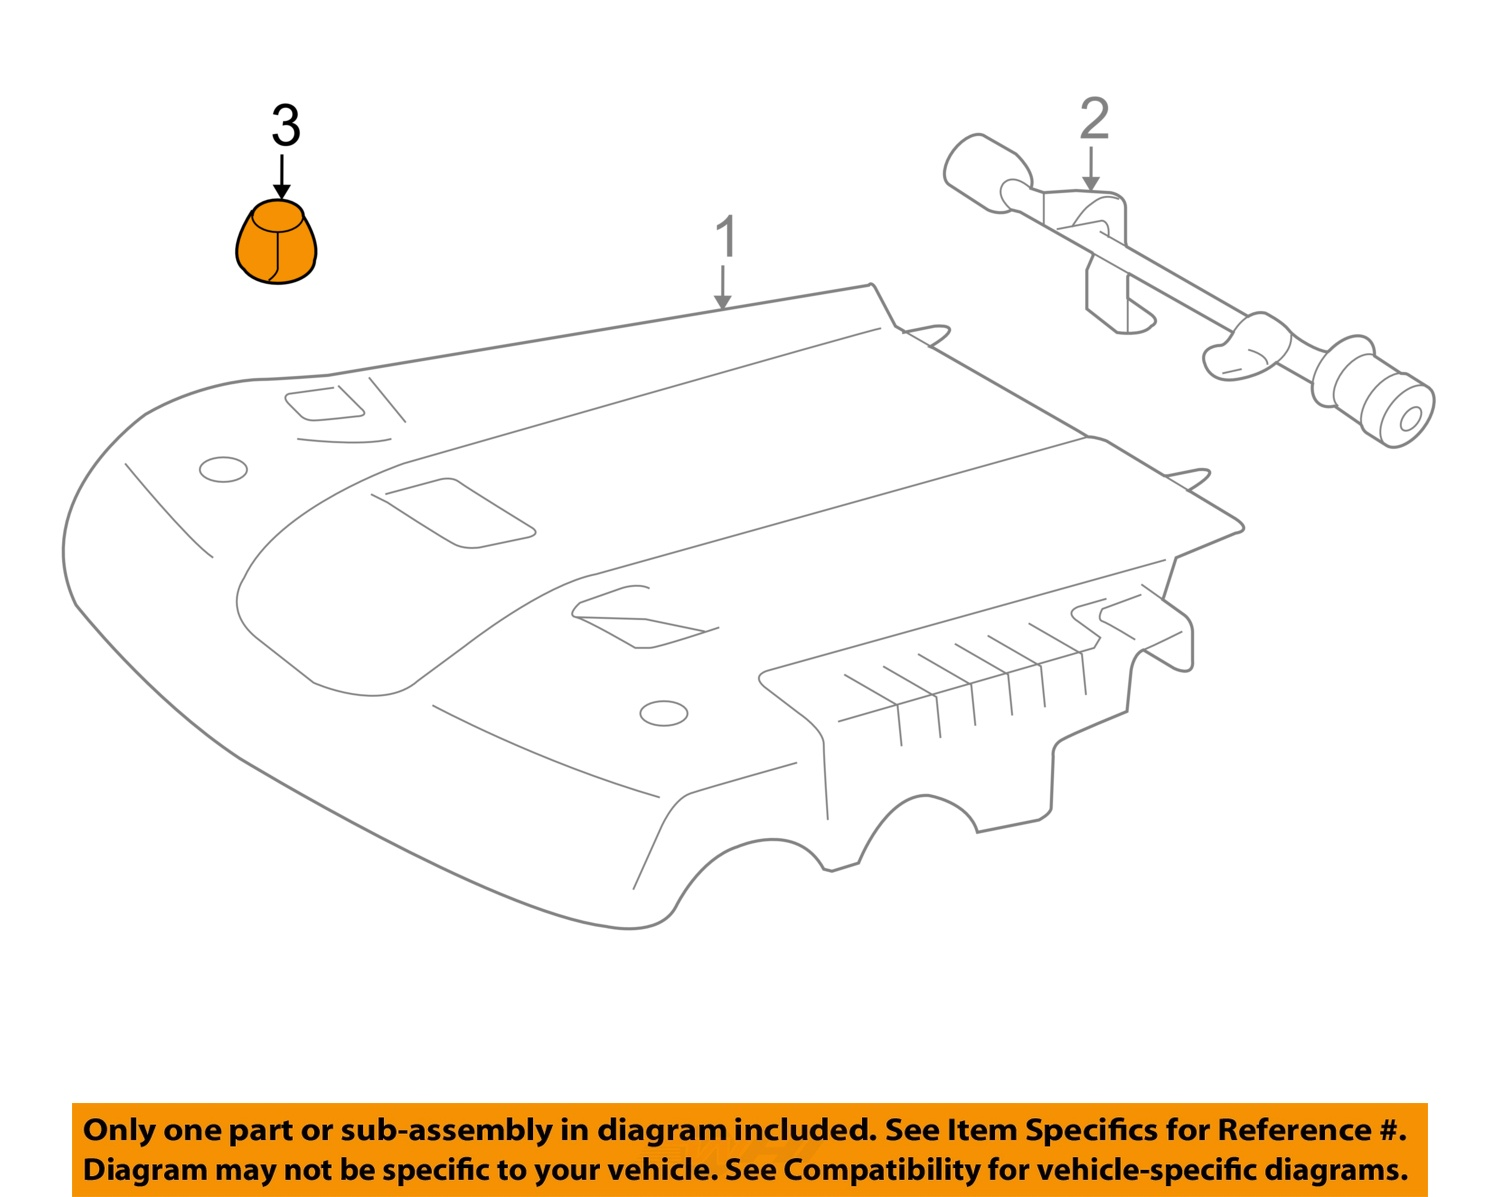 Fj Cruiser Engine Diagram Toyota Technical Illustrations Boss Bv9980nv Wiring Pdf Oem Appearance Cover 07 09